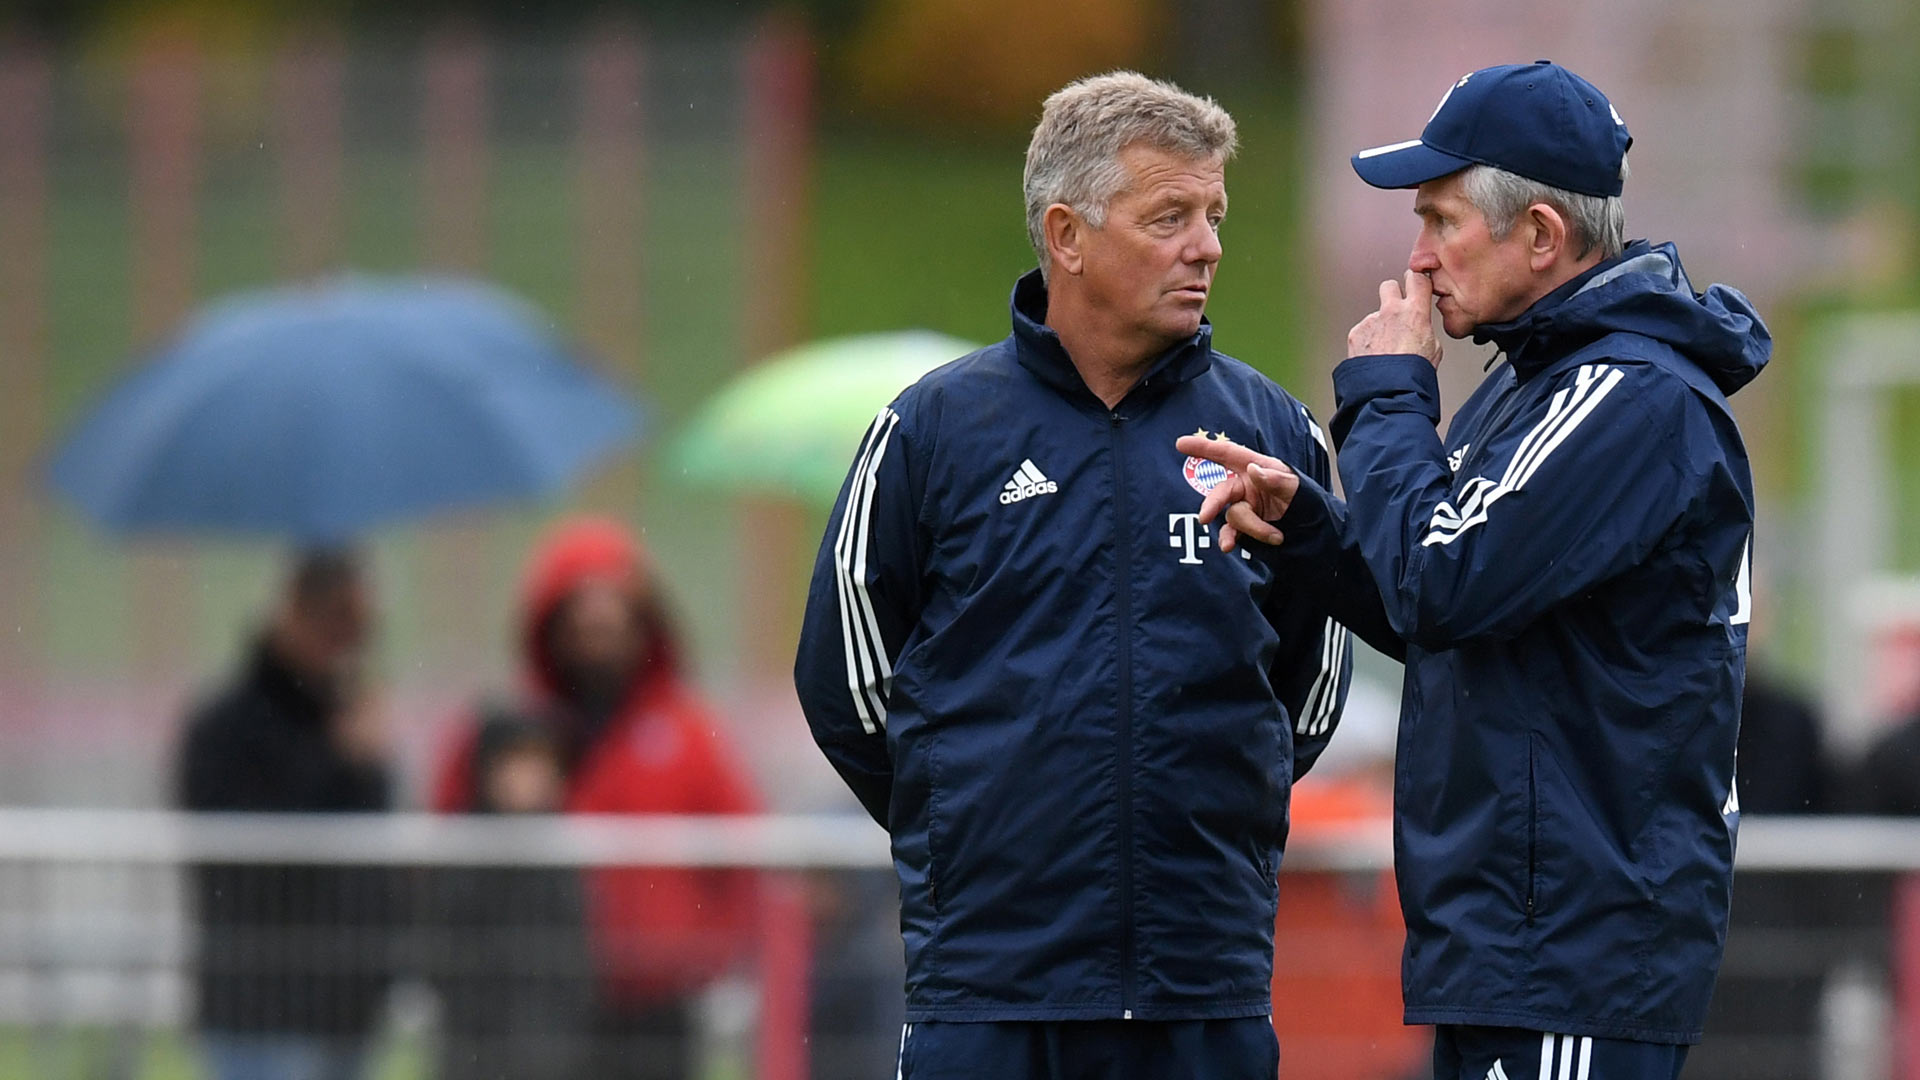 Jupp Heynckes Peter Hermann FC Bayern Training